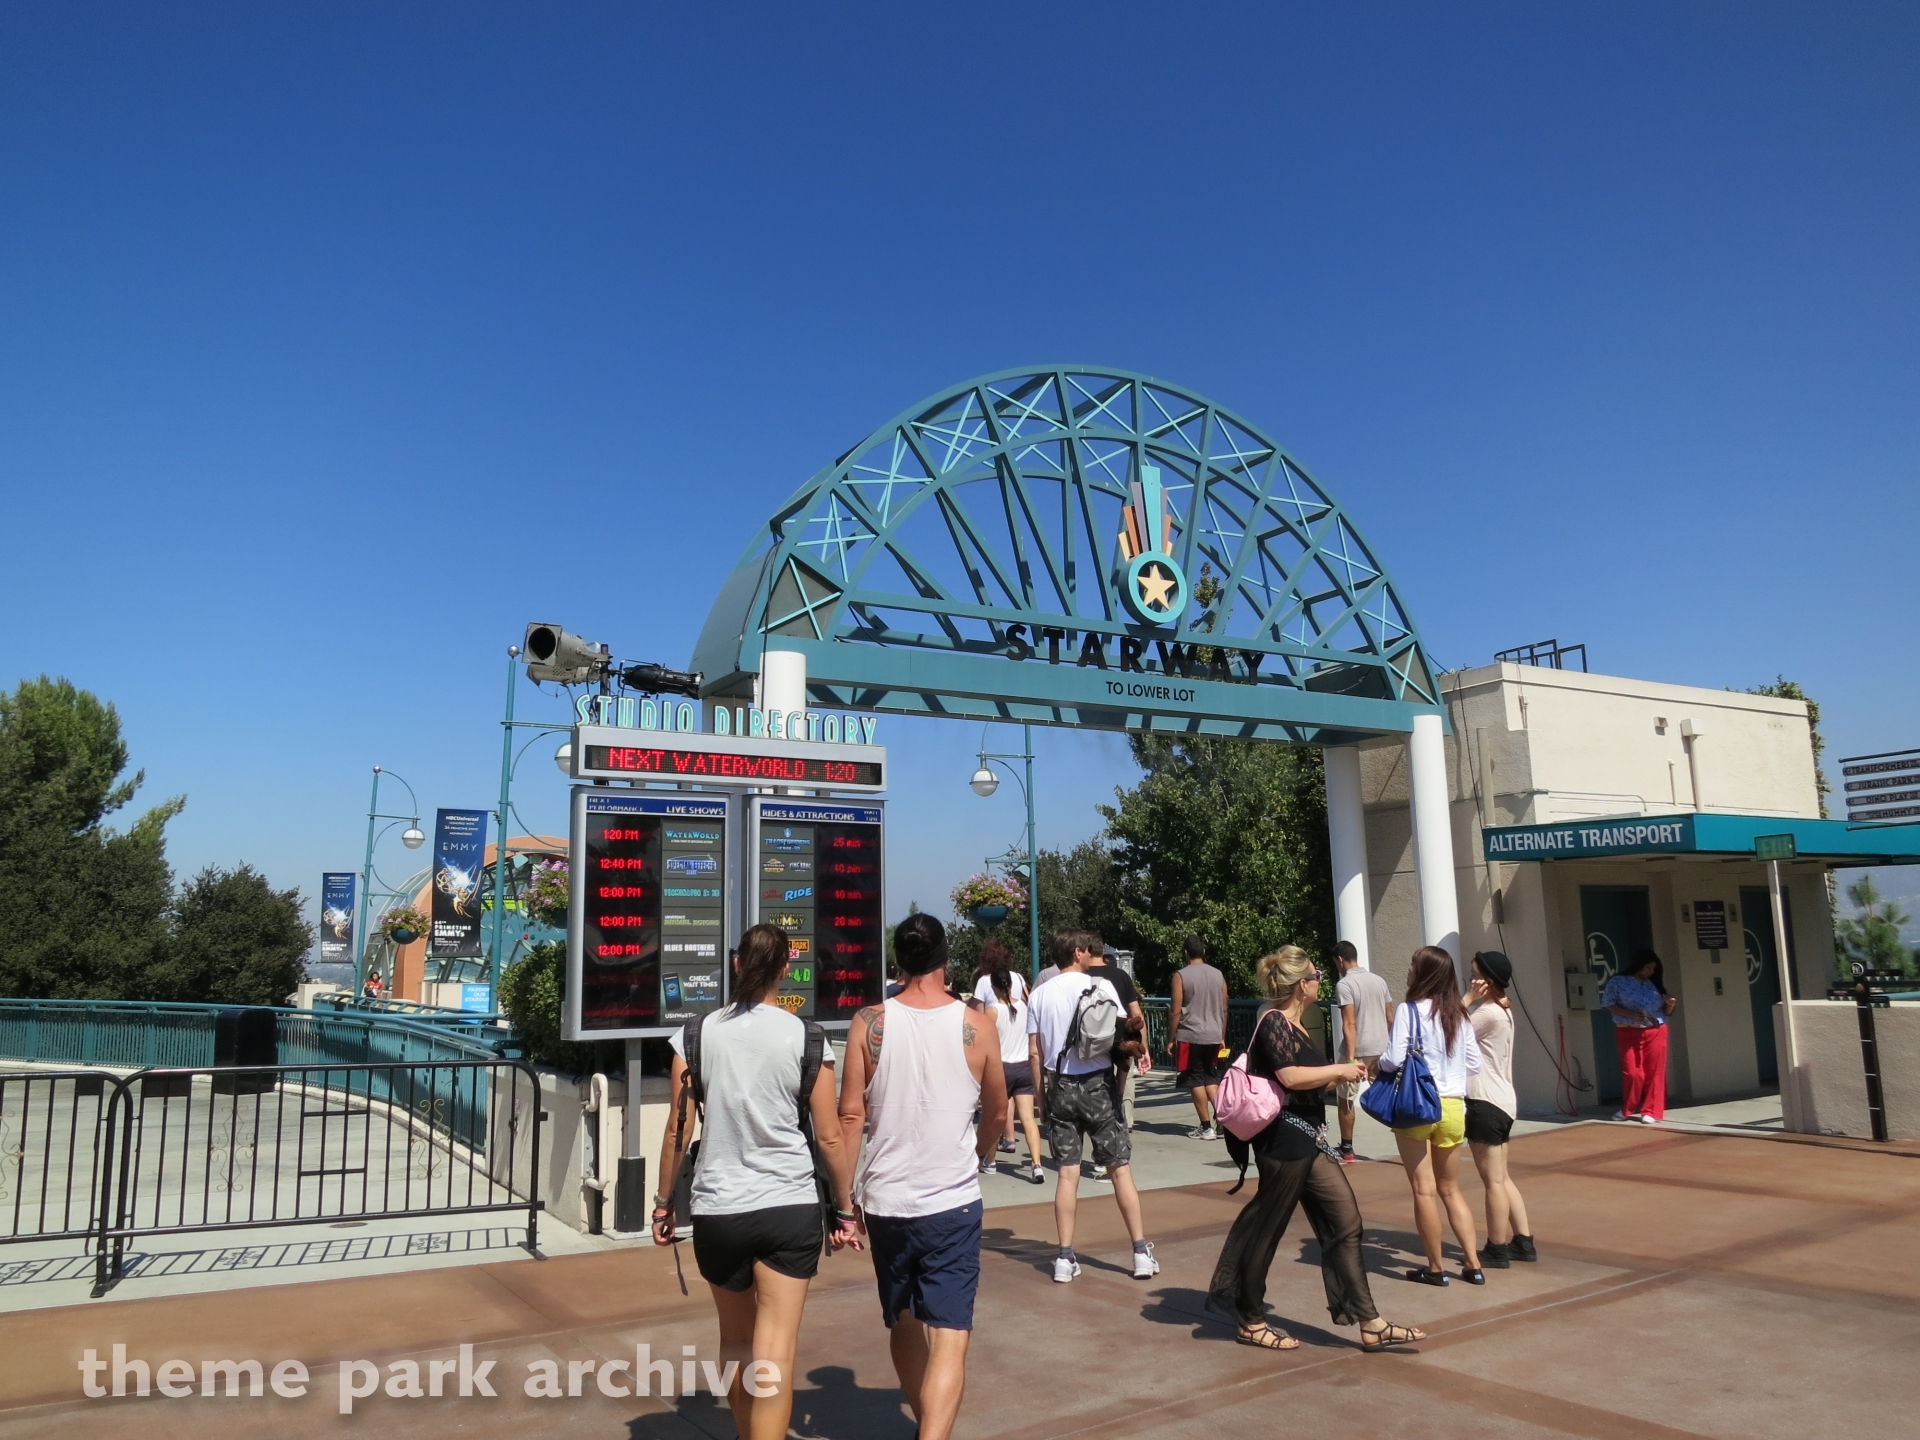 Starway at Universal Studios Hollywood